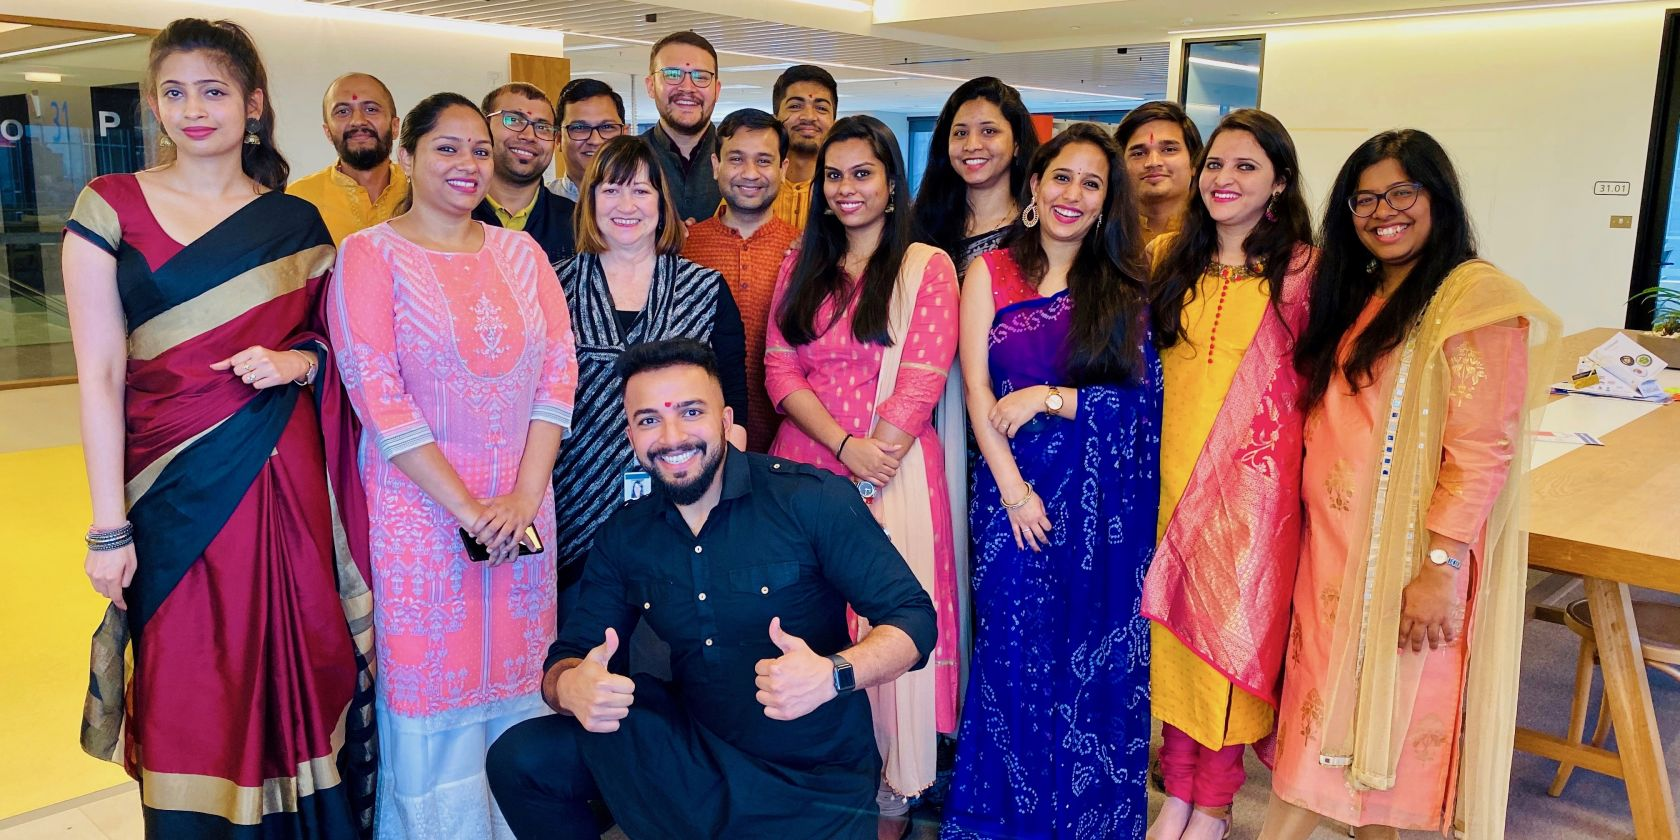 How Suncorp people celebrated Diwali in style